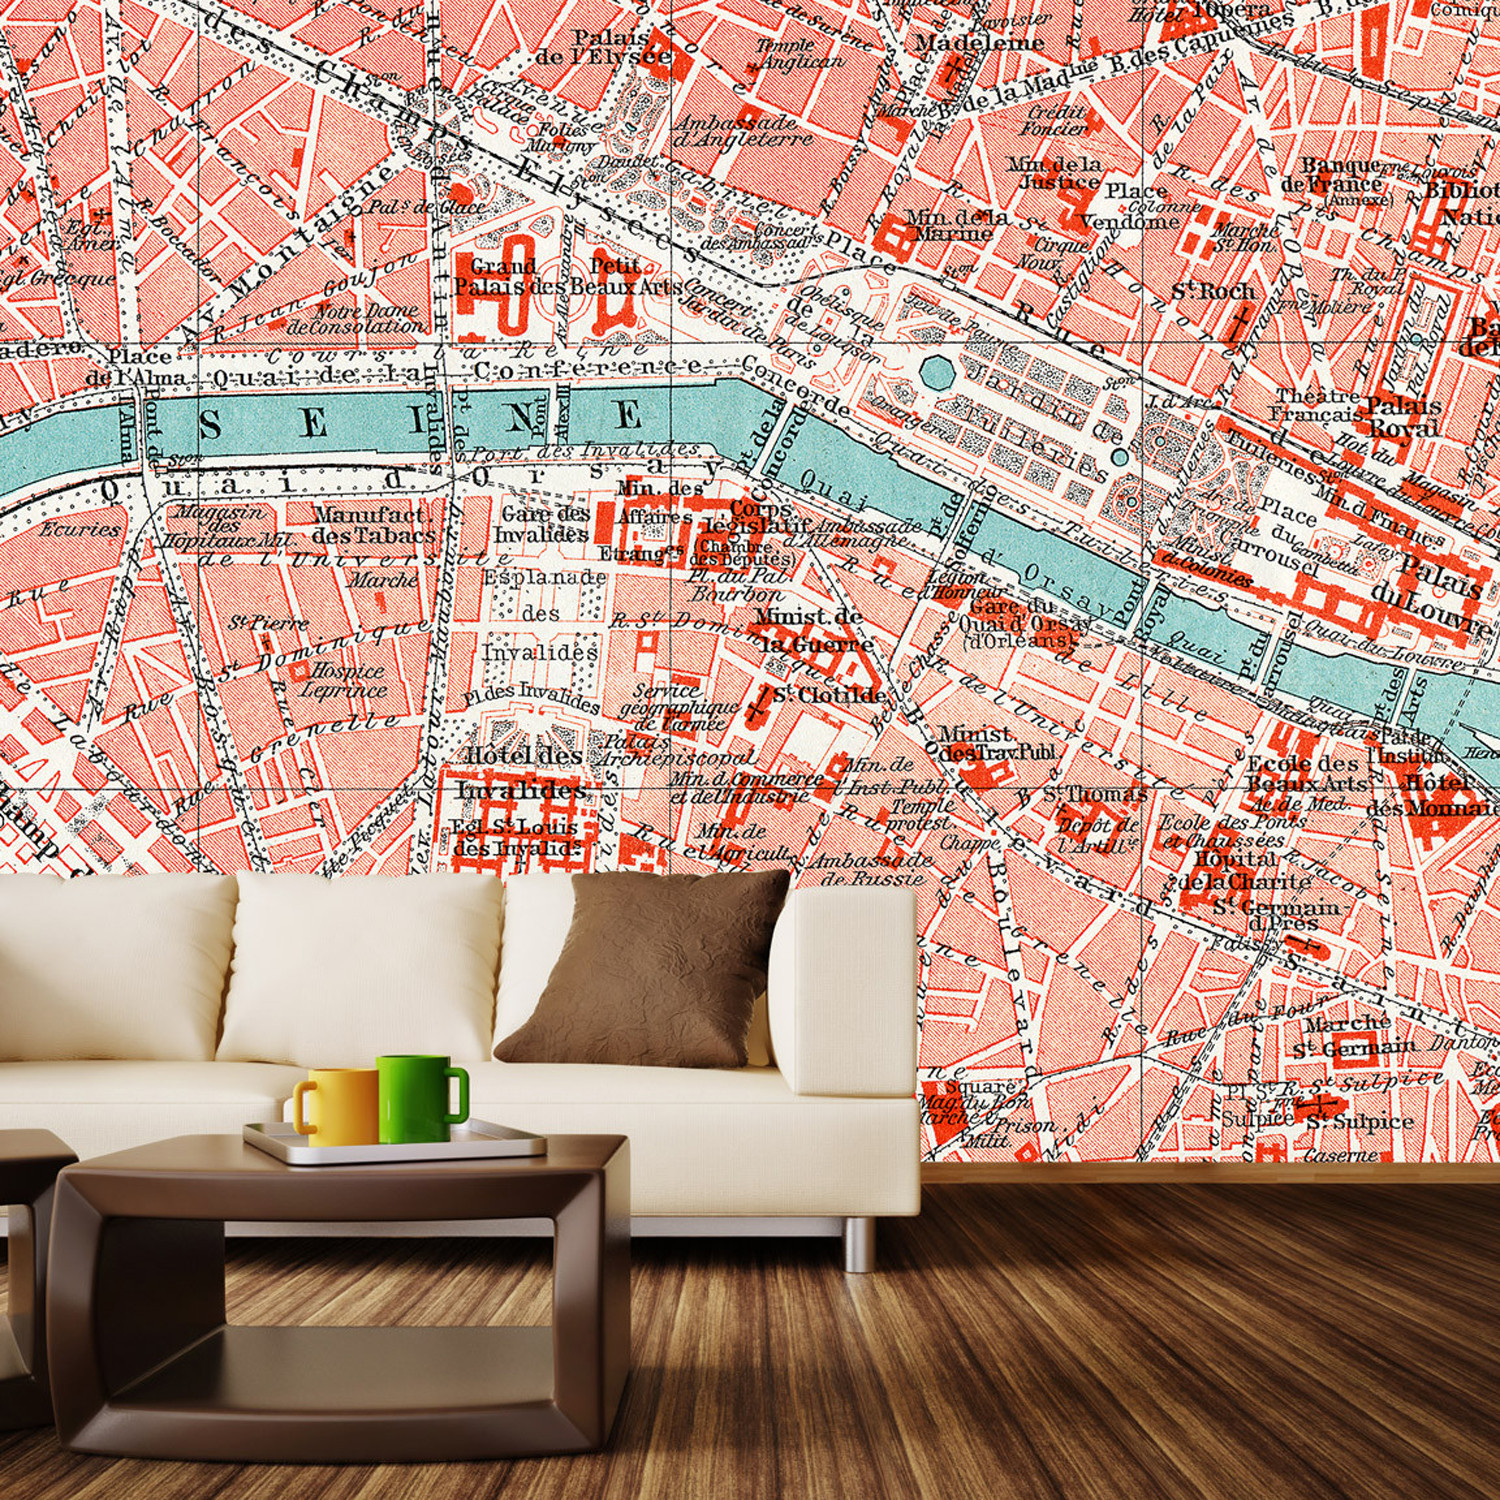 Parisian Map Wall Mural Decal L X W Walls Need Love - Map wall mural decal